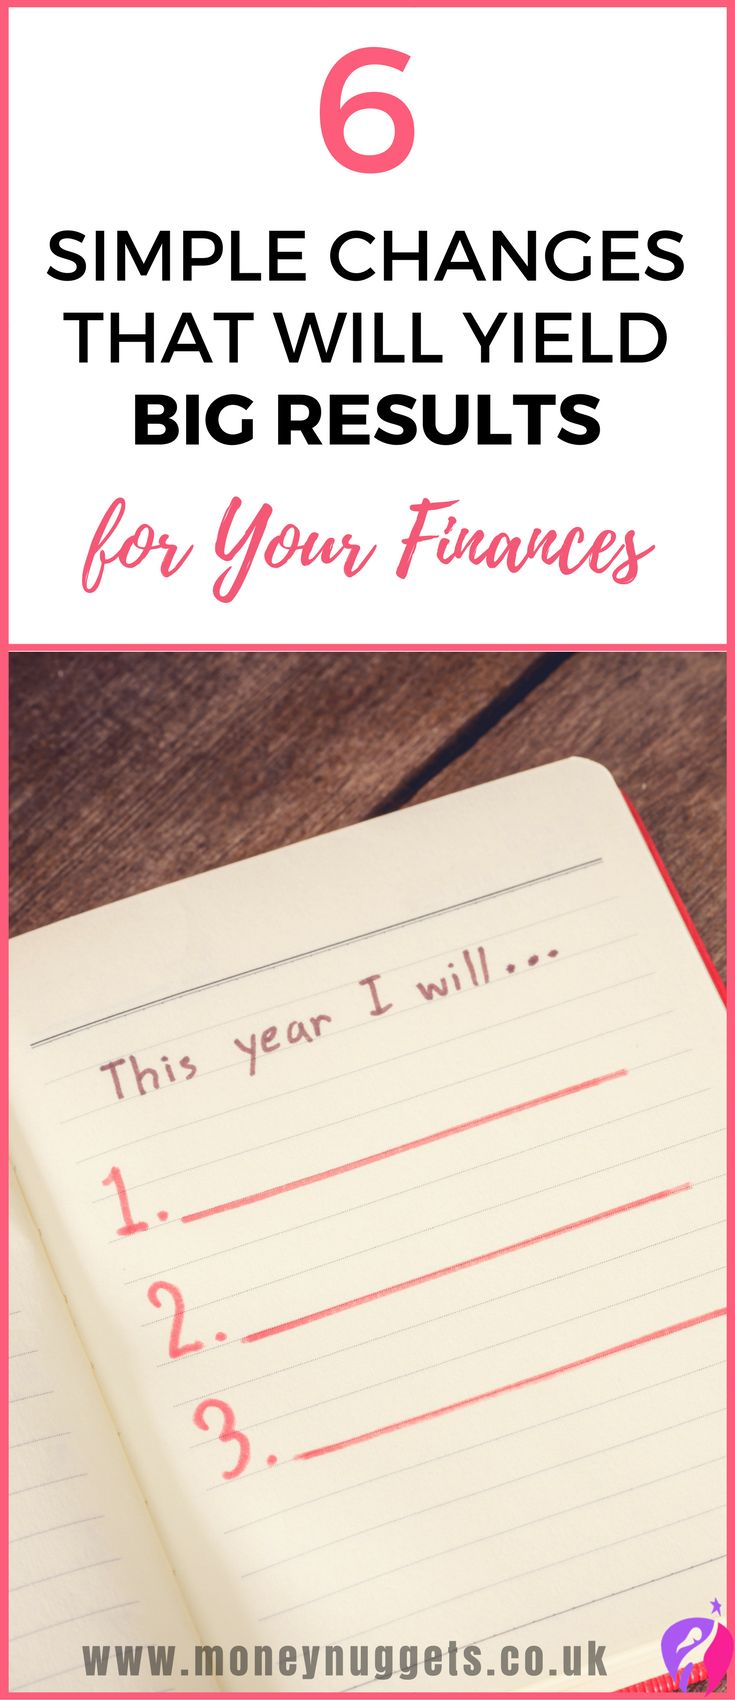 To get the new year off to a good start, here are the only six money New Year's resolutions you need to make 2018 YOUR year of financial success!